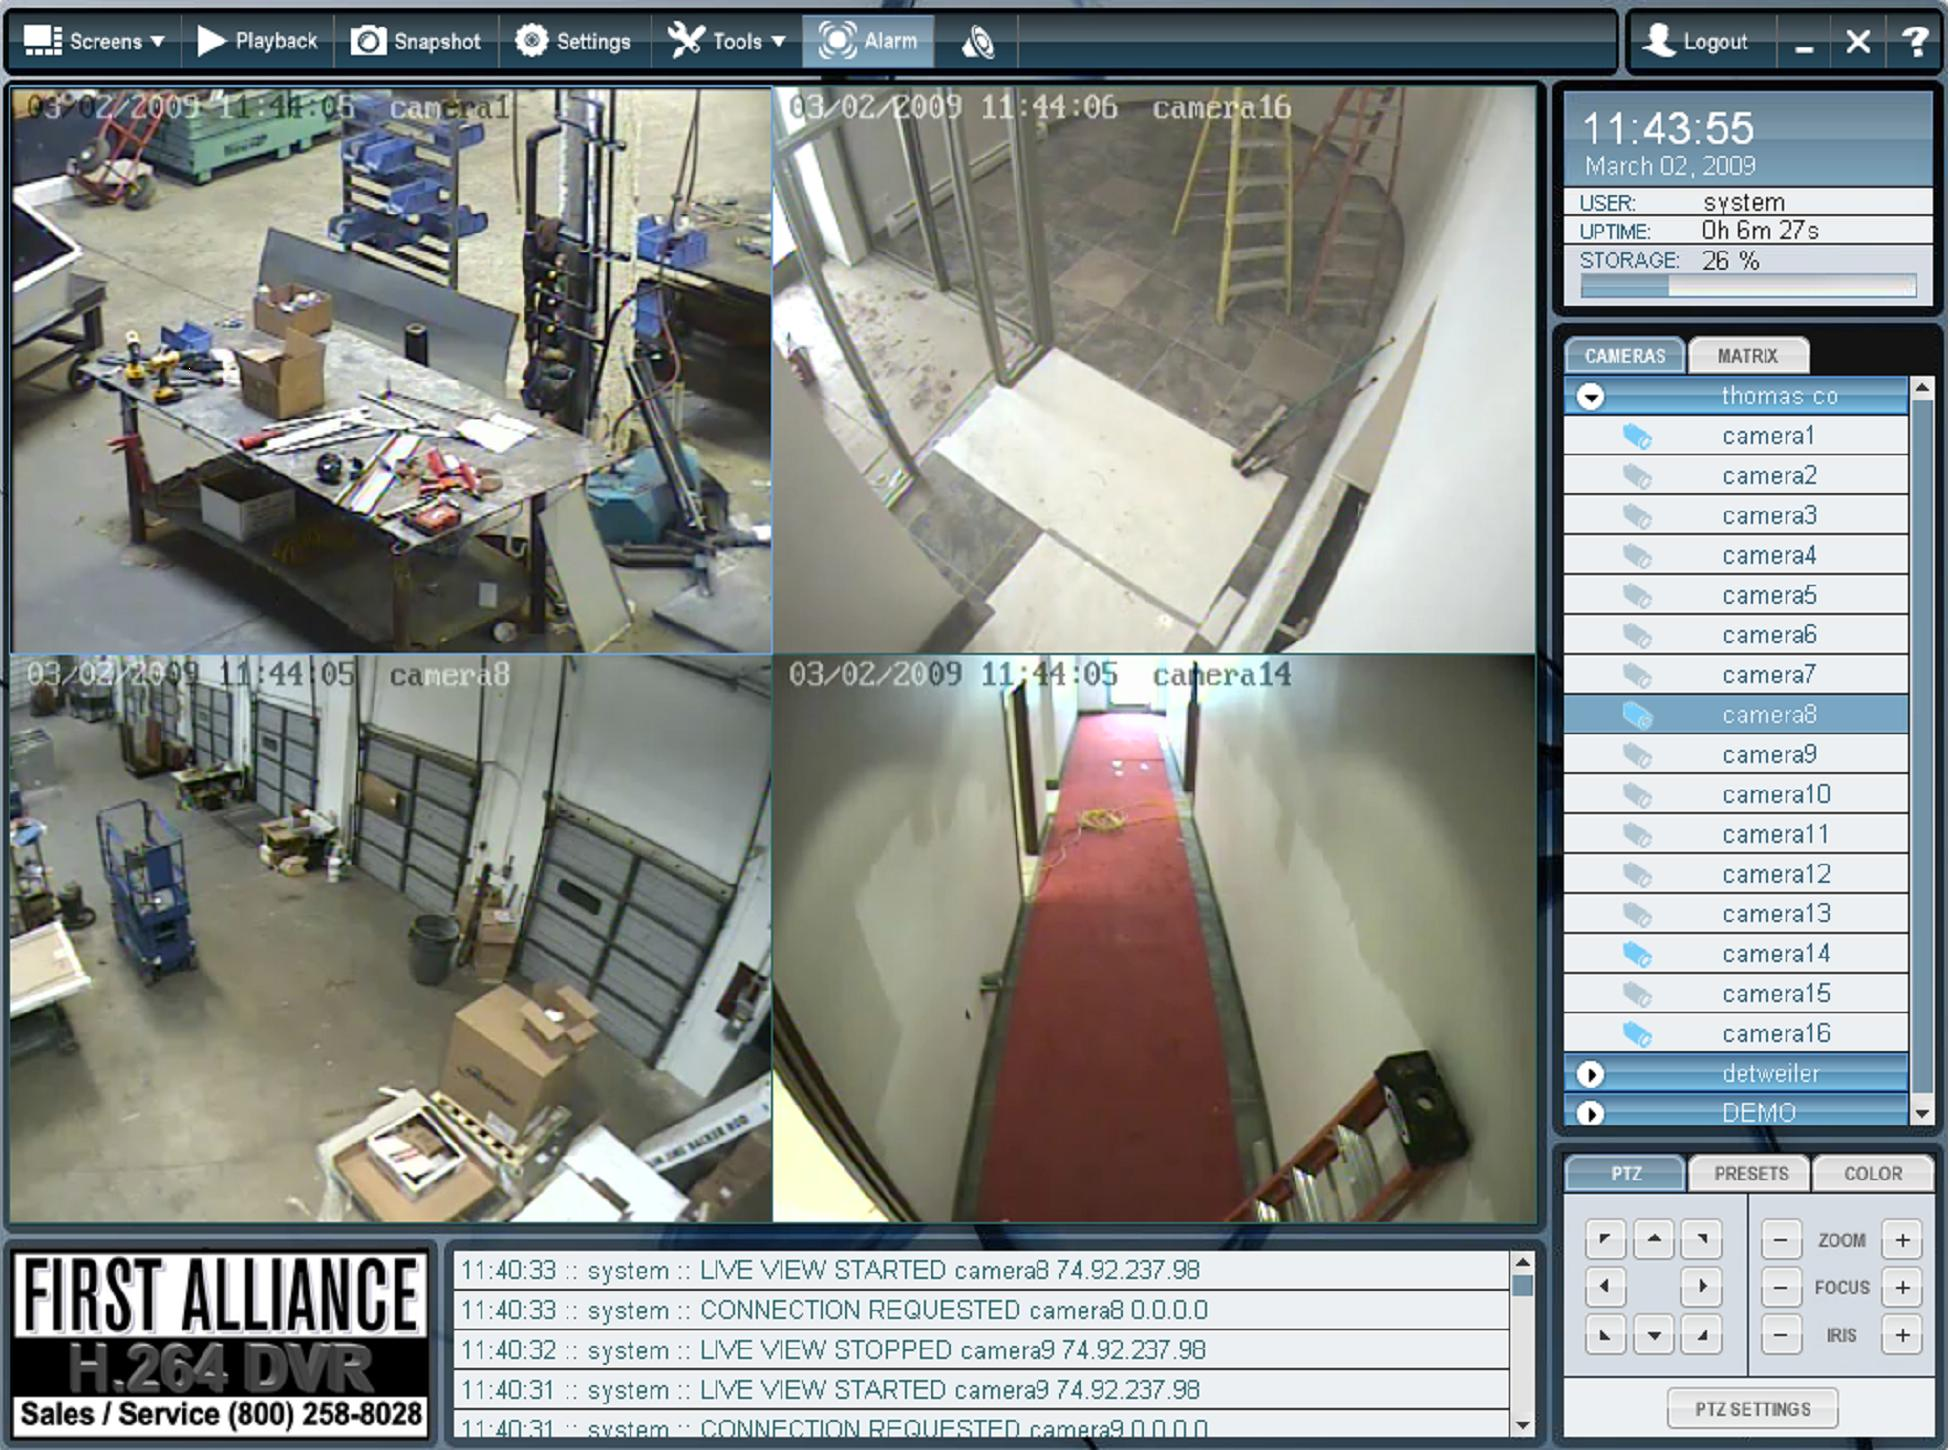 First Alliance Protection Systems, Digital Video Security